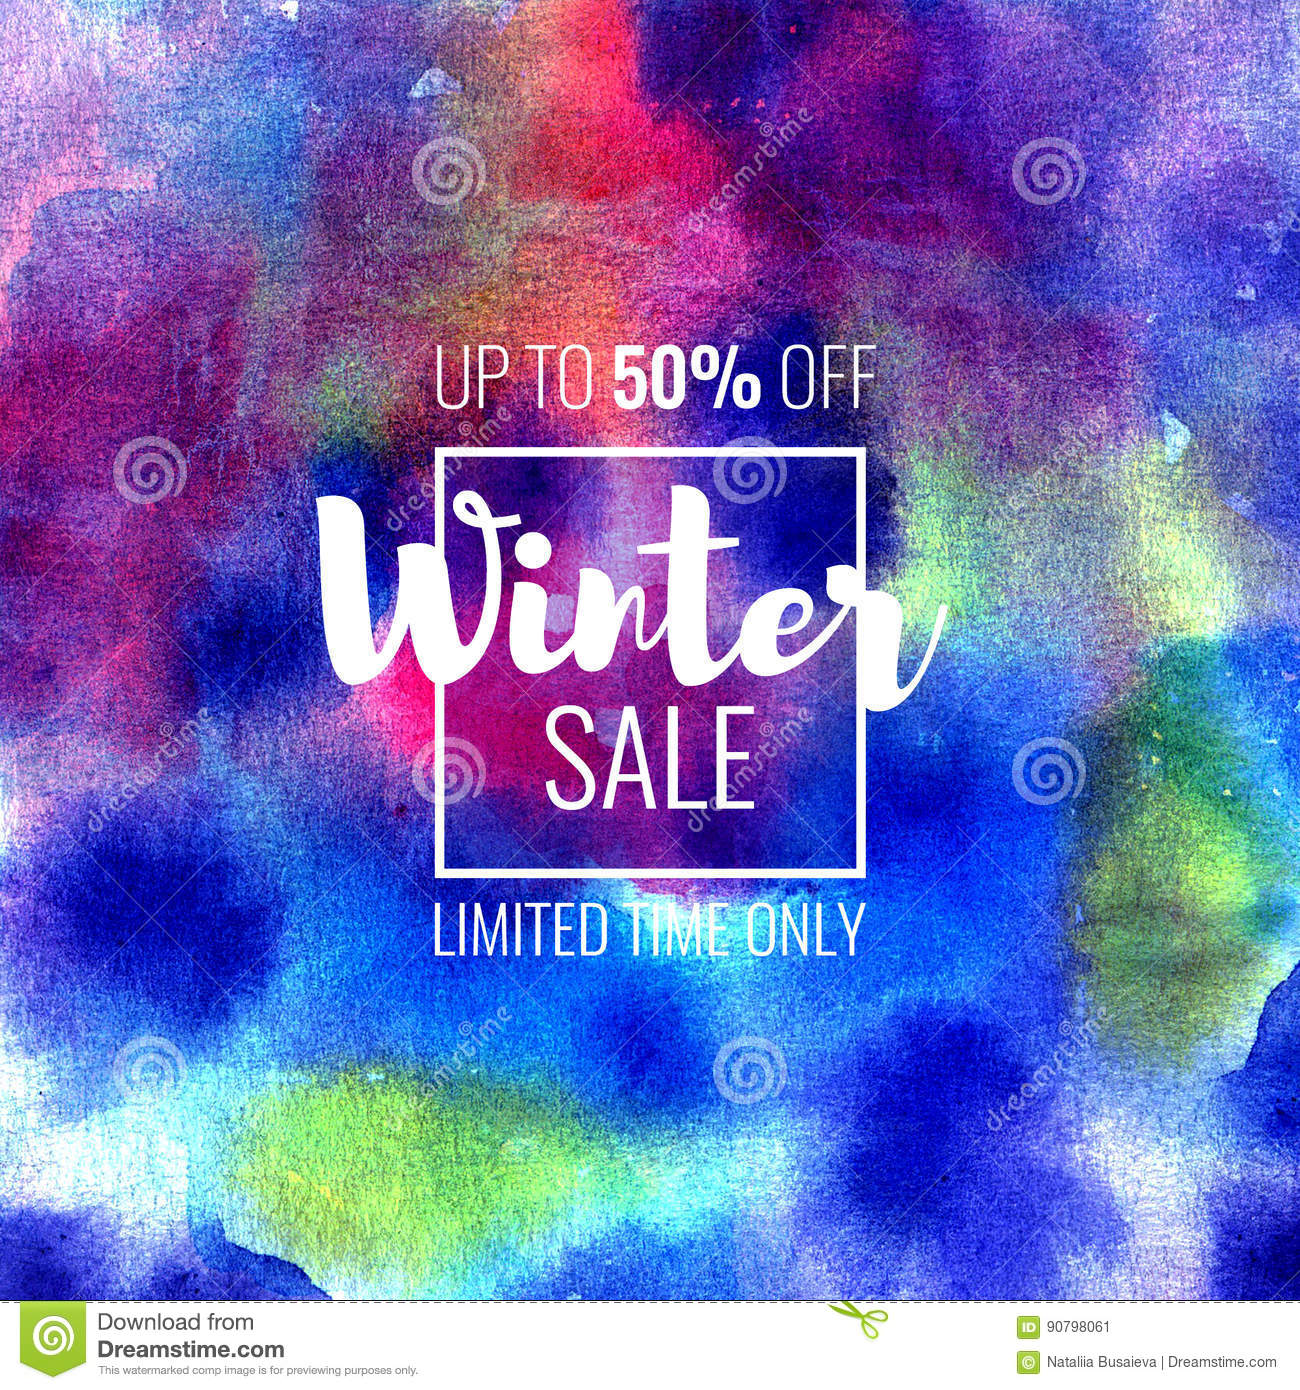 Winter Sale Banners Email Marketing Banners